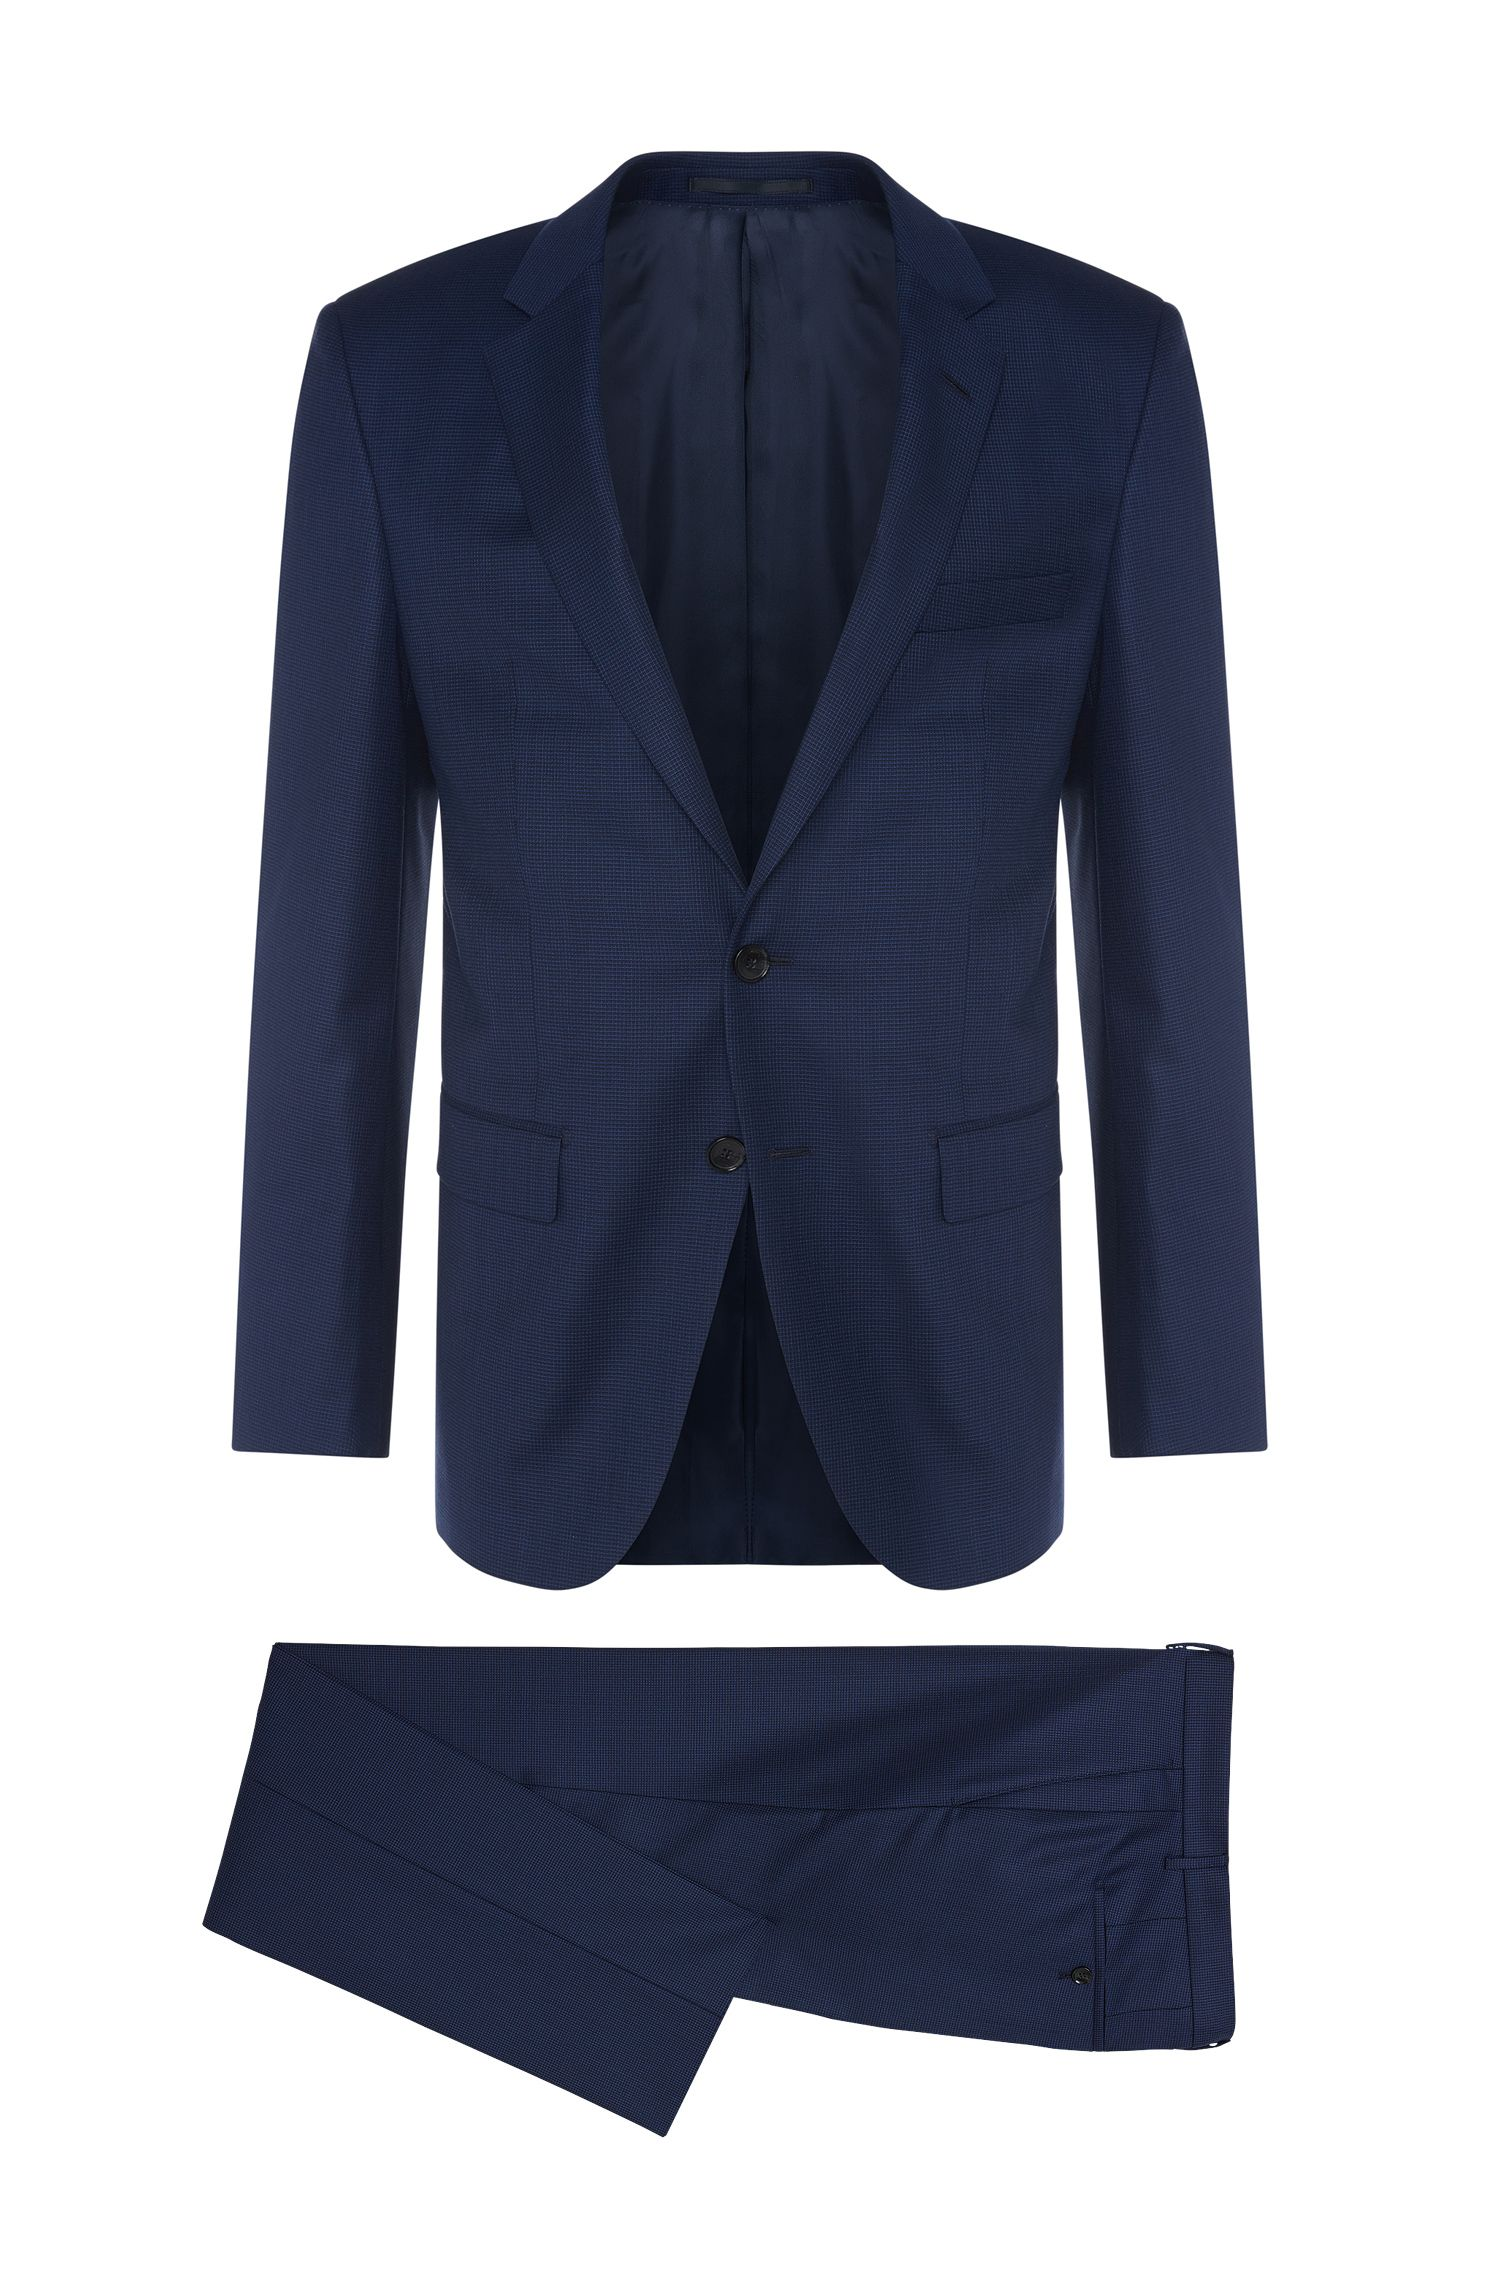 Costume Slim Fit Tailored en laine vierge, à motif raffiné : « T-Harvers2/Glover1 »